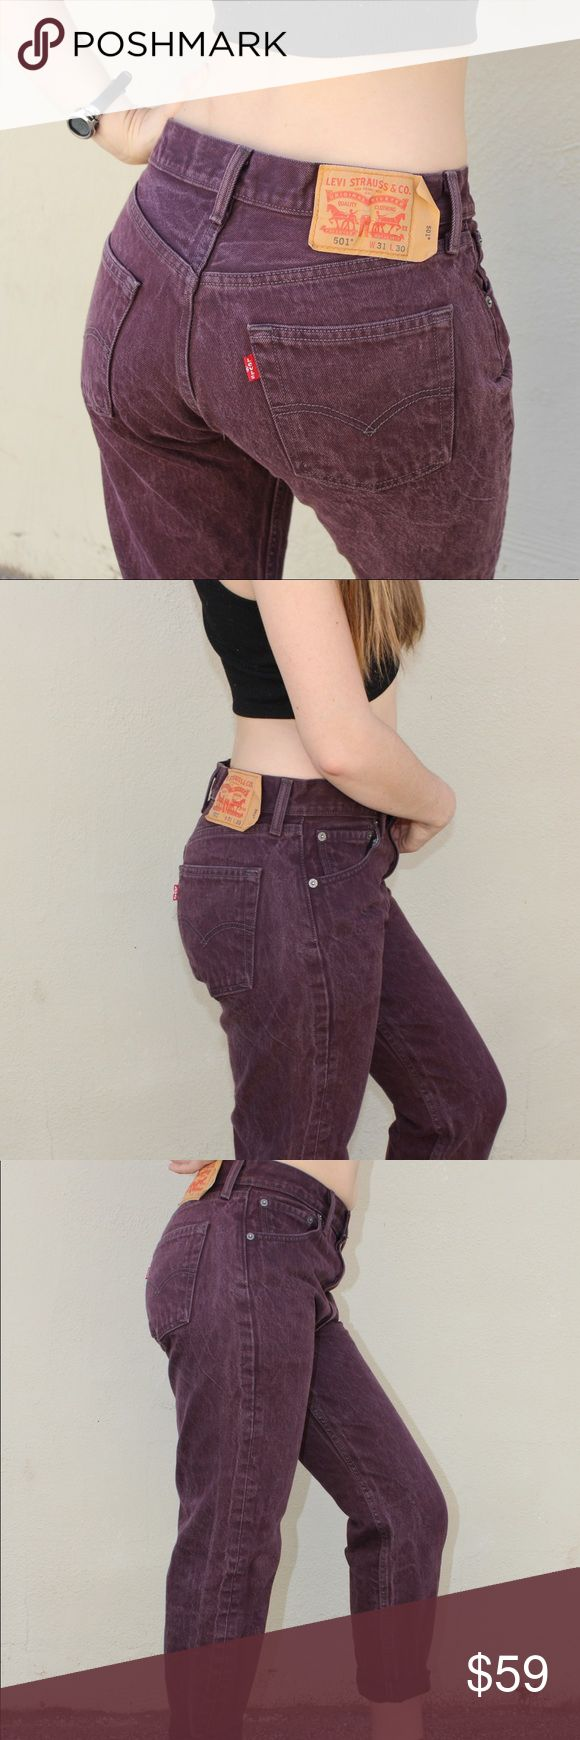 """Vintage Dark Purple Levi Jeans 501 W33xL30 👖💜 (4 Button up)  Your favorite 501. Fit! Gettem before they're gone ! Measurements : Inseam : 27"""" ( not rolled up ) Rise : 11 Waist : 30"""" I would say a size 8 maybe a 10 FREE SHIPPING ON MY DEPOP @leamyesha Levi's Jeans Straight Leg"""